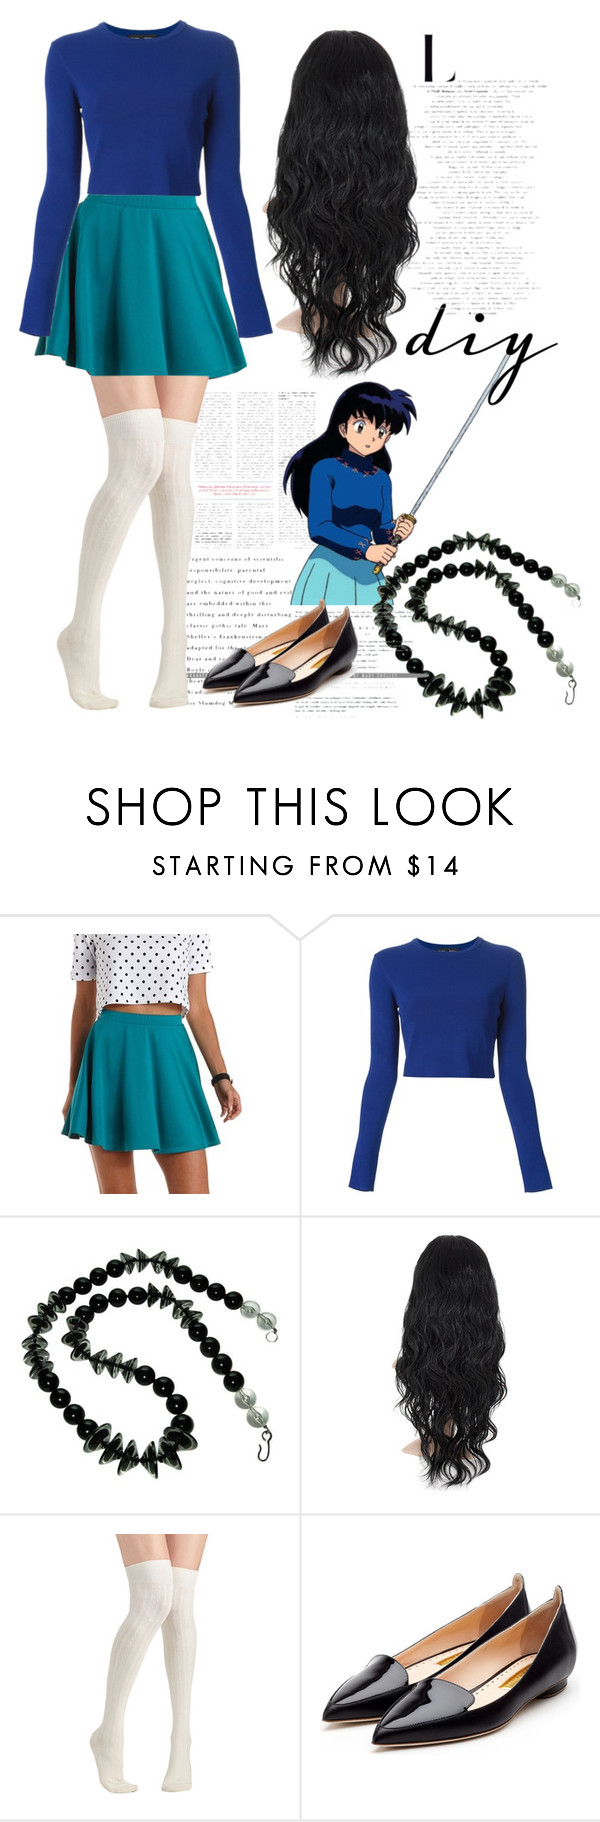 """""""halloween diy : kagome inspired look"""" by d-cuevas ❤ liked on Polyvore featuring Charlotte Russe, Proenza Schouler, Rupert Sanderson, inuyasha, diycostume and KagomeHigurashi"""